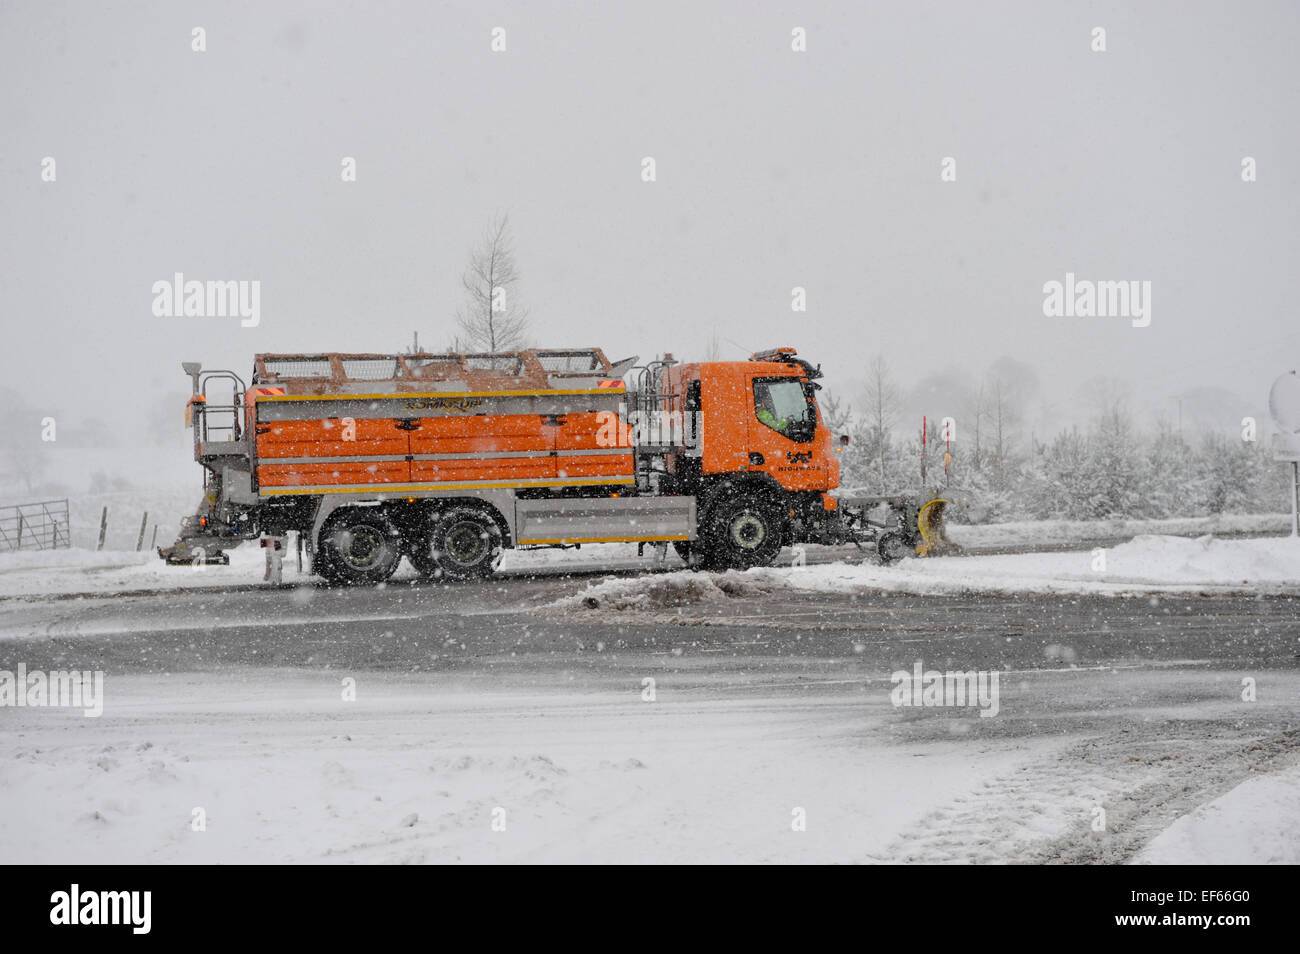 Council wagon spreading grit and snowploughing a snow covered road, Cumbria, UK - Stock Image